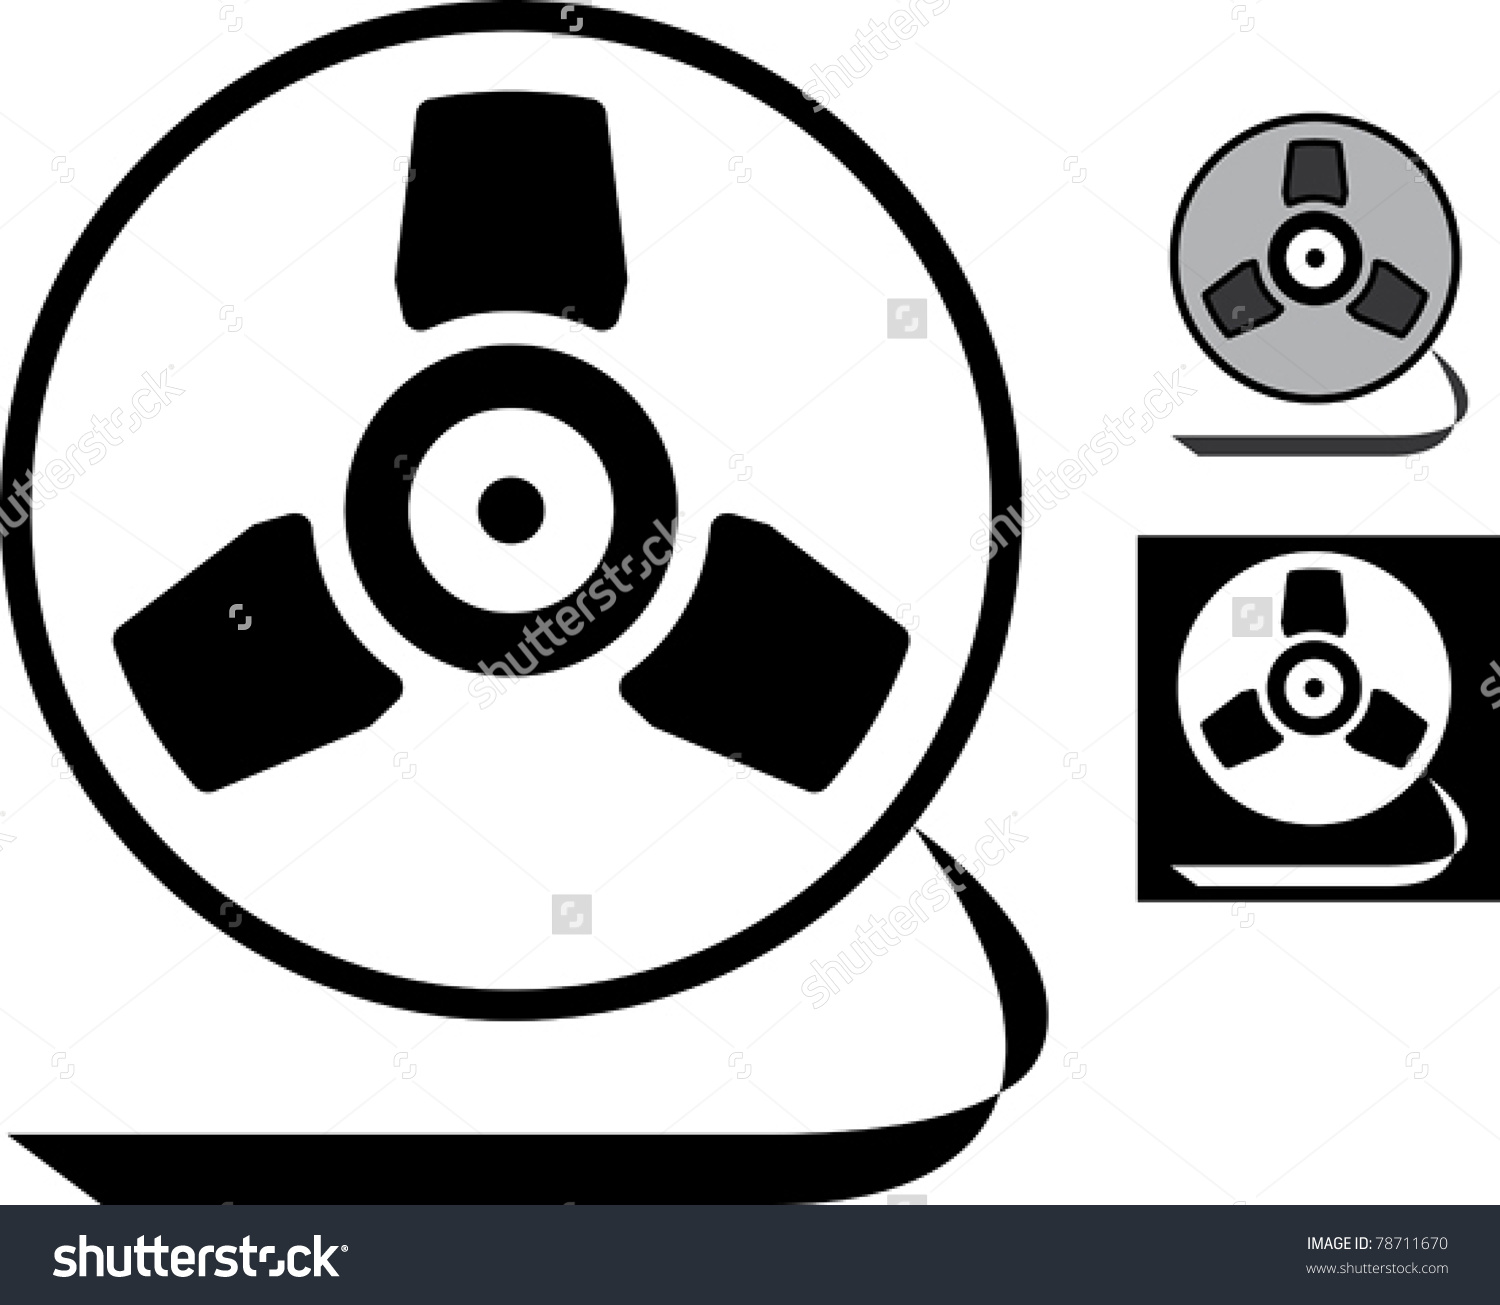 Retro Magnetic Tape Reel Vector Stock Vector 78711670.